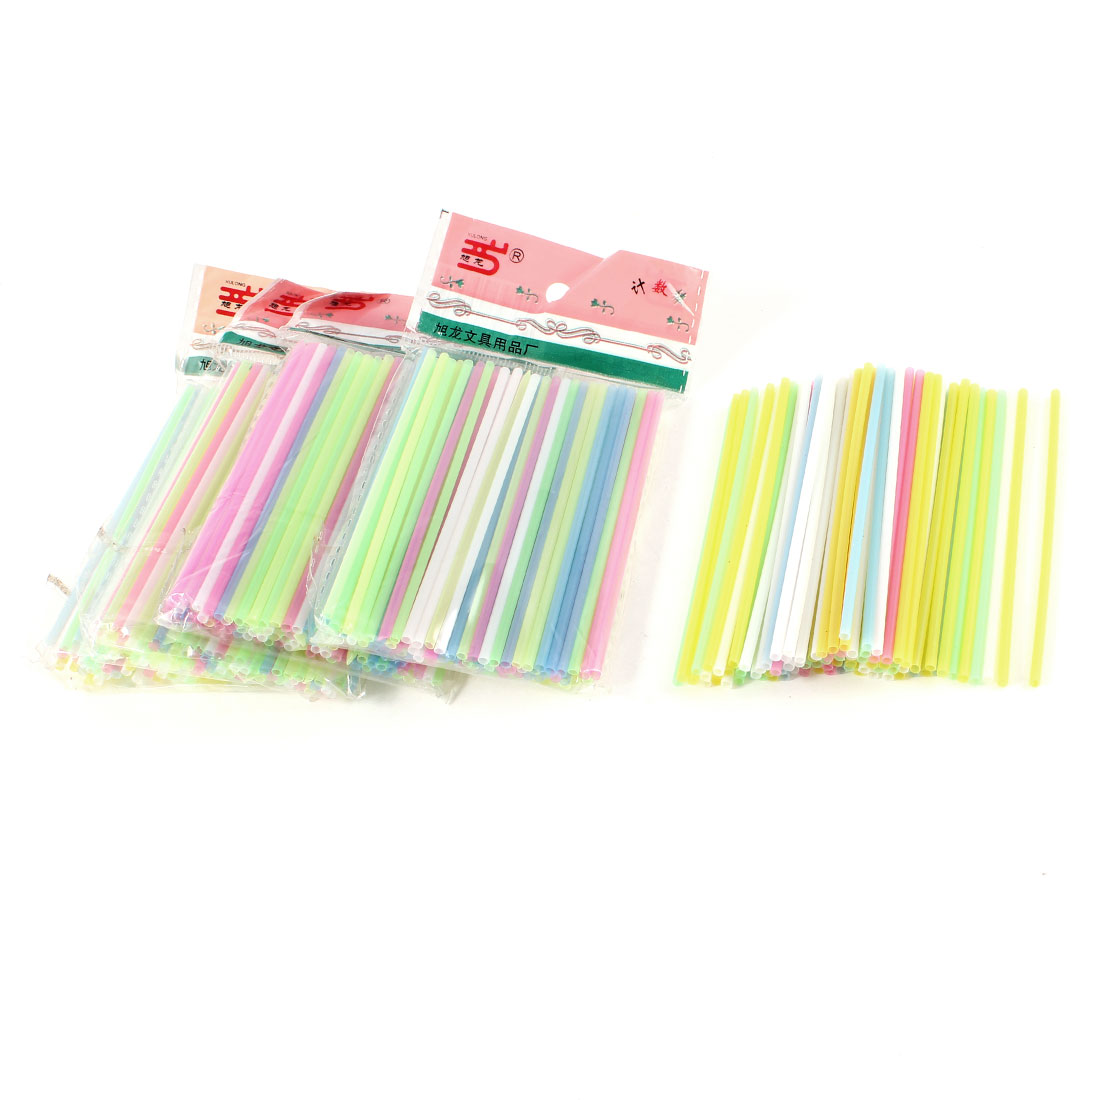 5 Packs Assorted Color Plastic Counting Sticks Educational Toy for Children